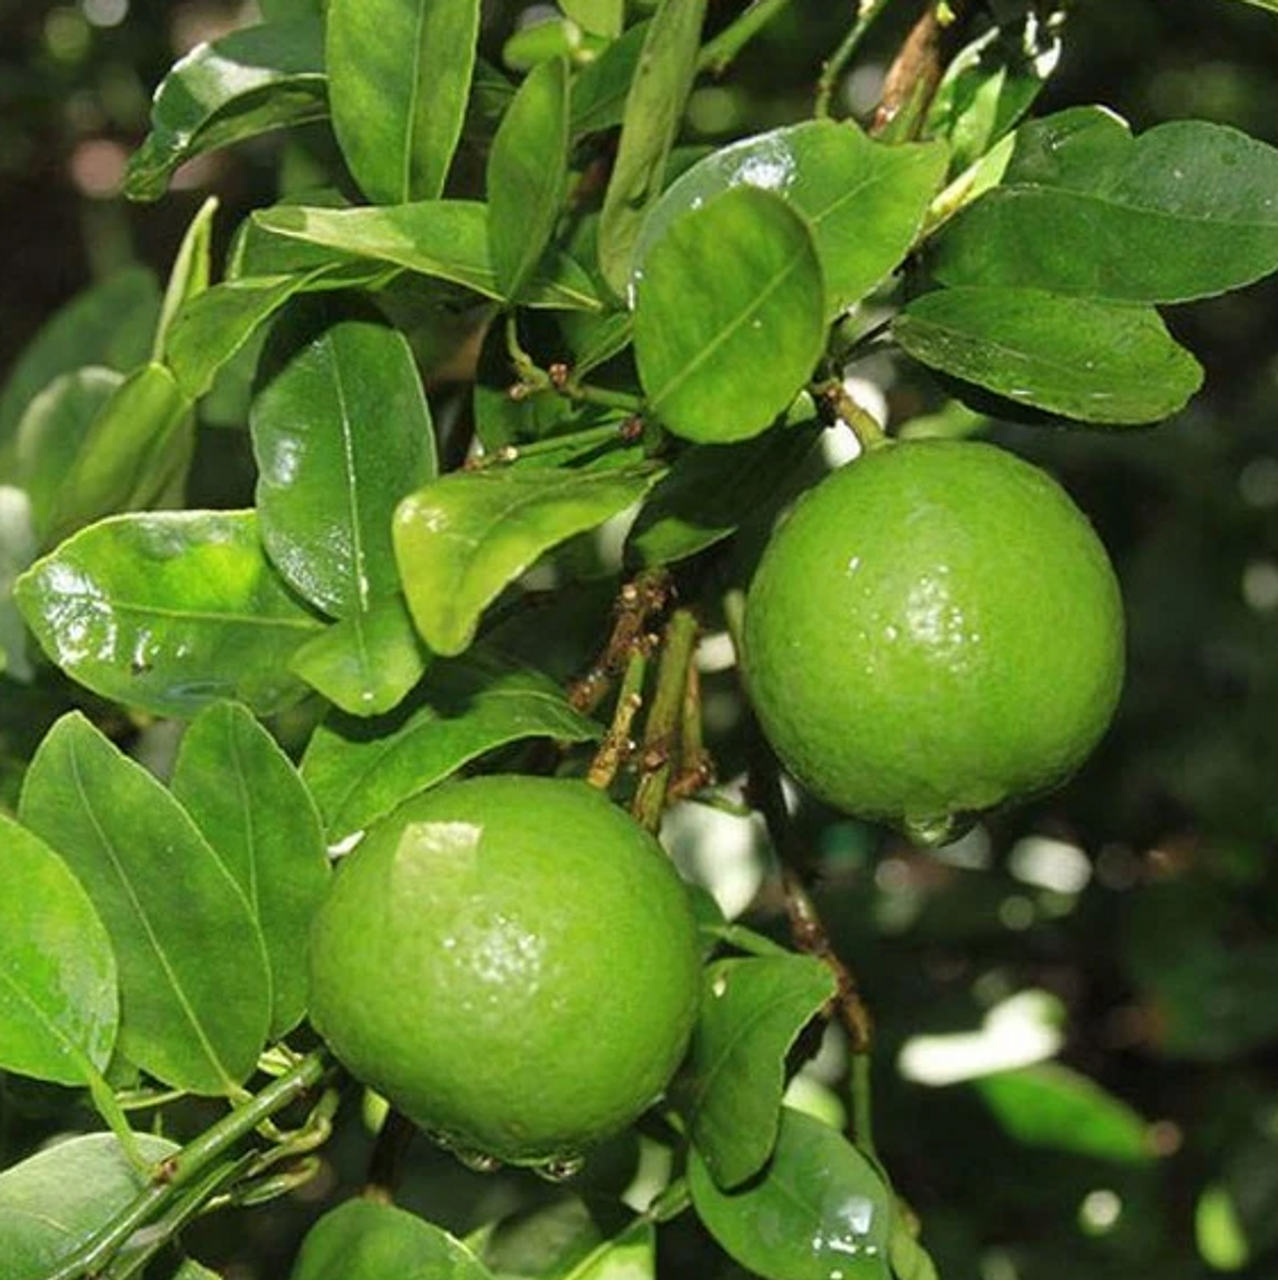 The Key lime is smaller, seedier, has higher acidity, stronger aroma, and thinner rind than the Persian lime (Citrus × latifolia). The Key lime is valued for its unique flavor compared with other limes. The name is derived from its association with the Florida Keys, where it is best known as the flavoring ingredient in Key lime pie.